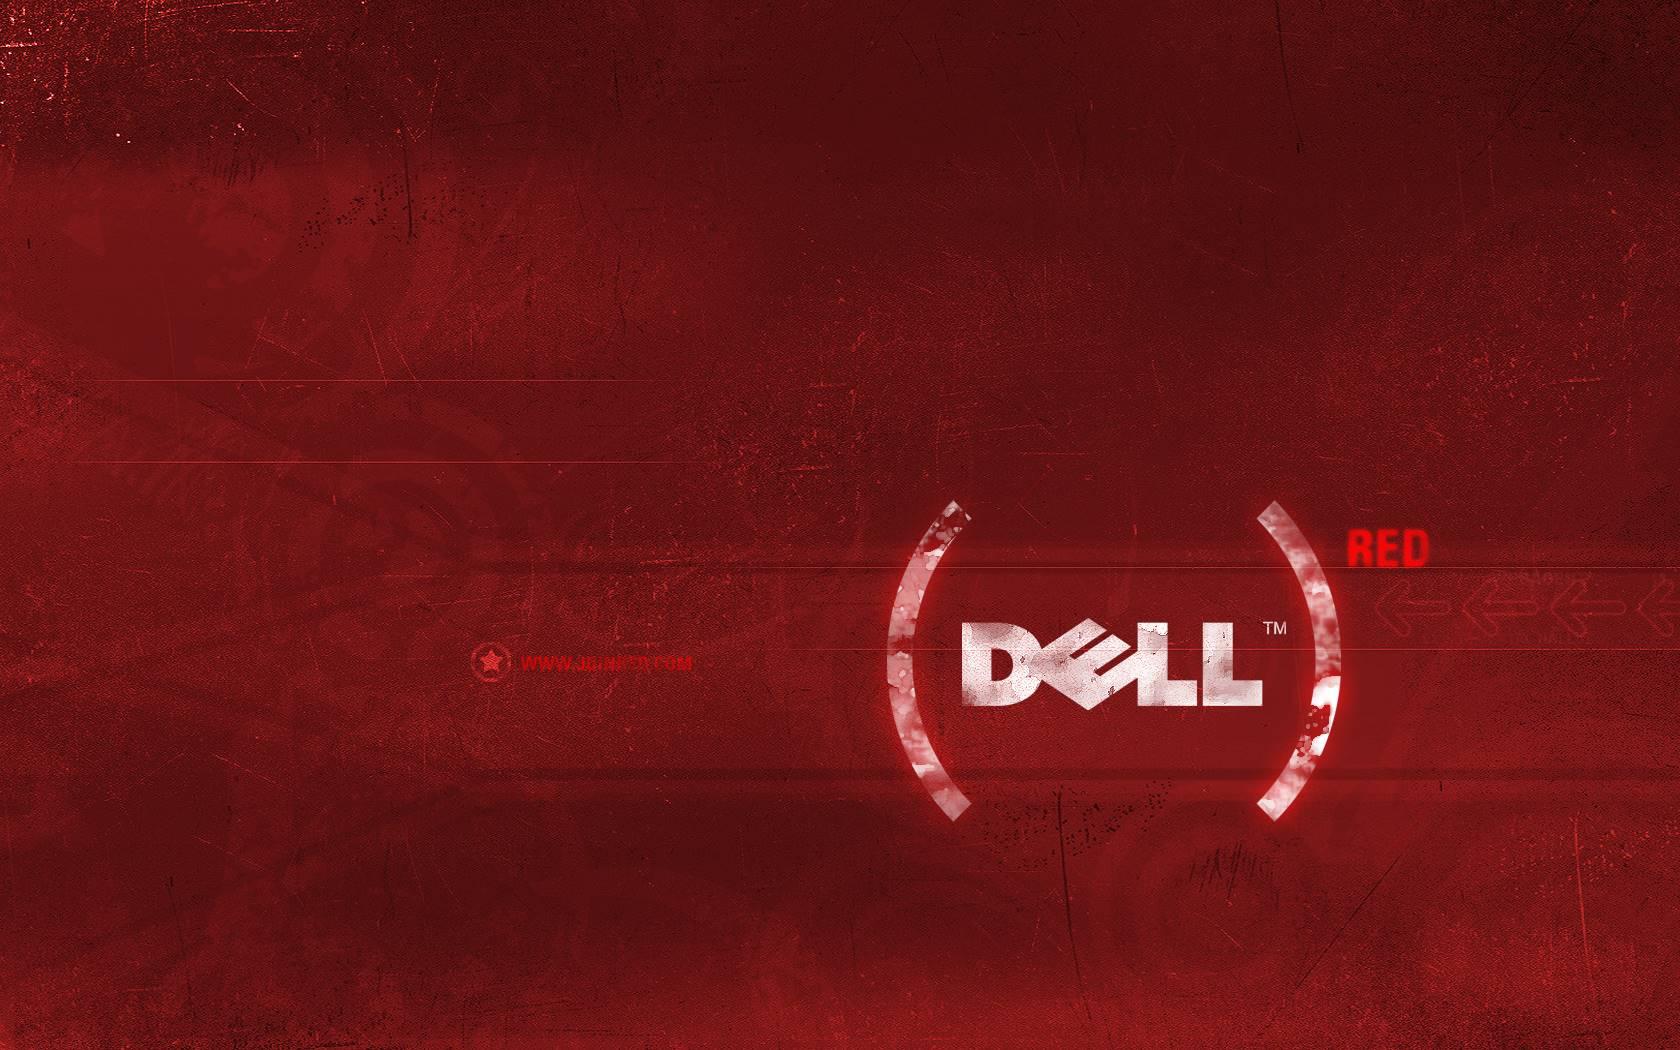 Dell Inspiron Background